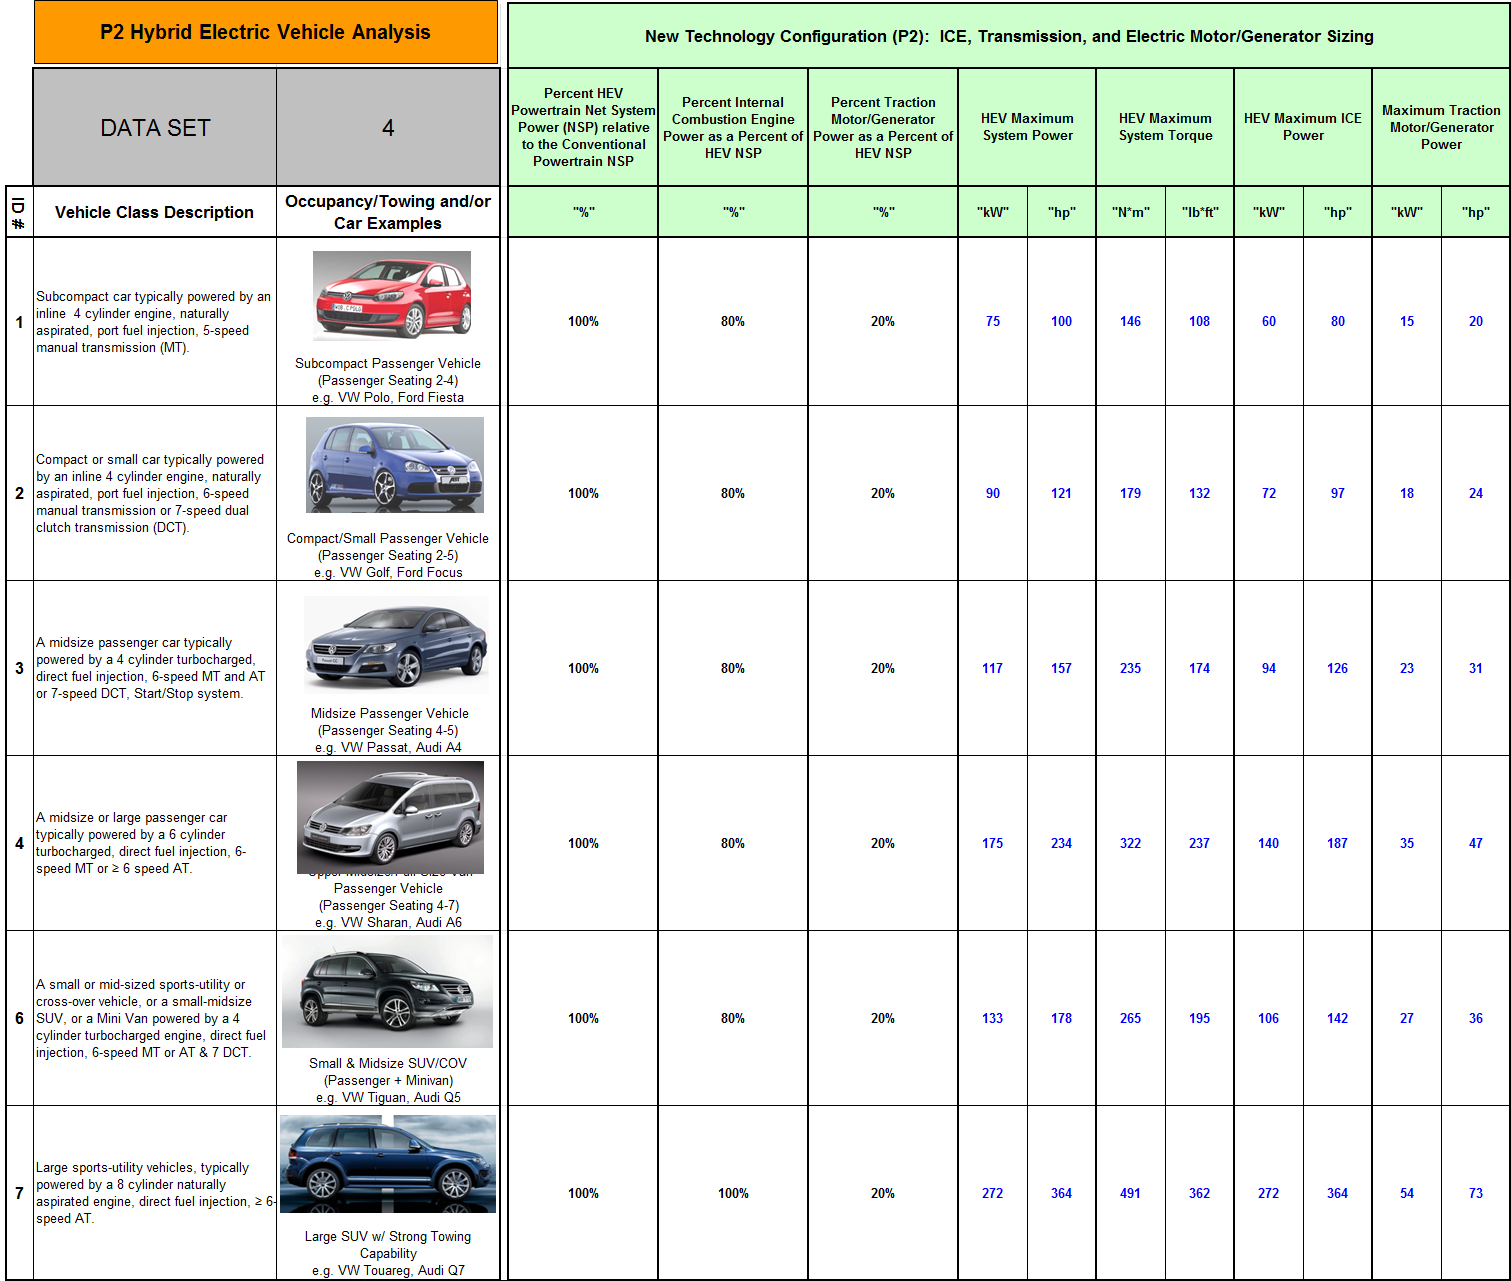 Page 126 Table G-5: P2 Vehicle Segment Attribute Database File,